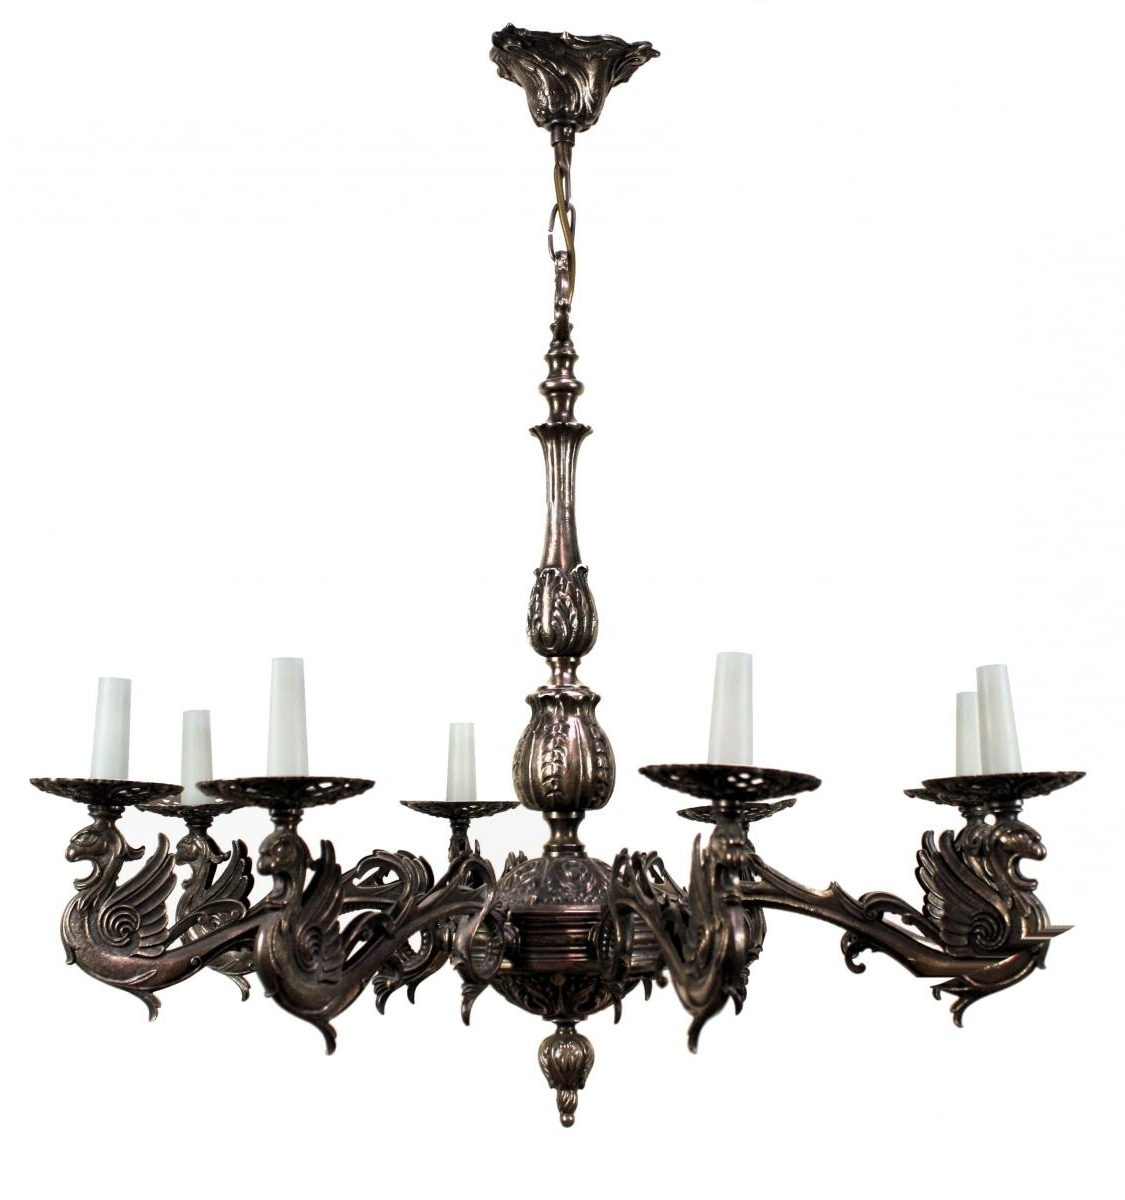 2019 French Silvered Bronze Gothic Style Chandelier, 1900s For Sale At Pamono With Regard To French Bronze Chandelier (View 15 of 20)